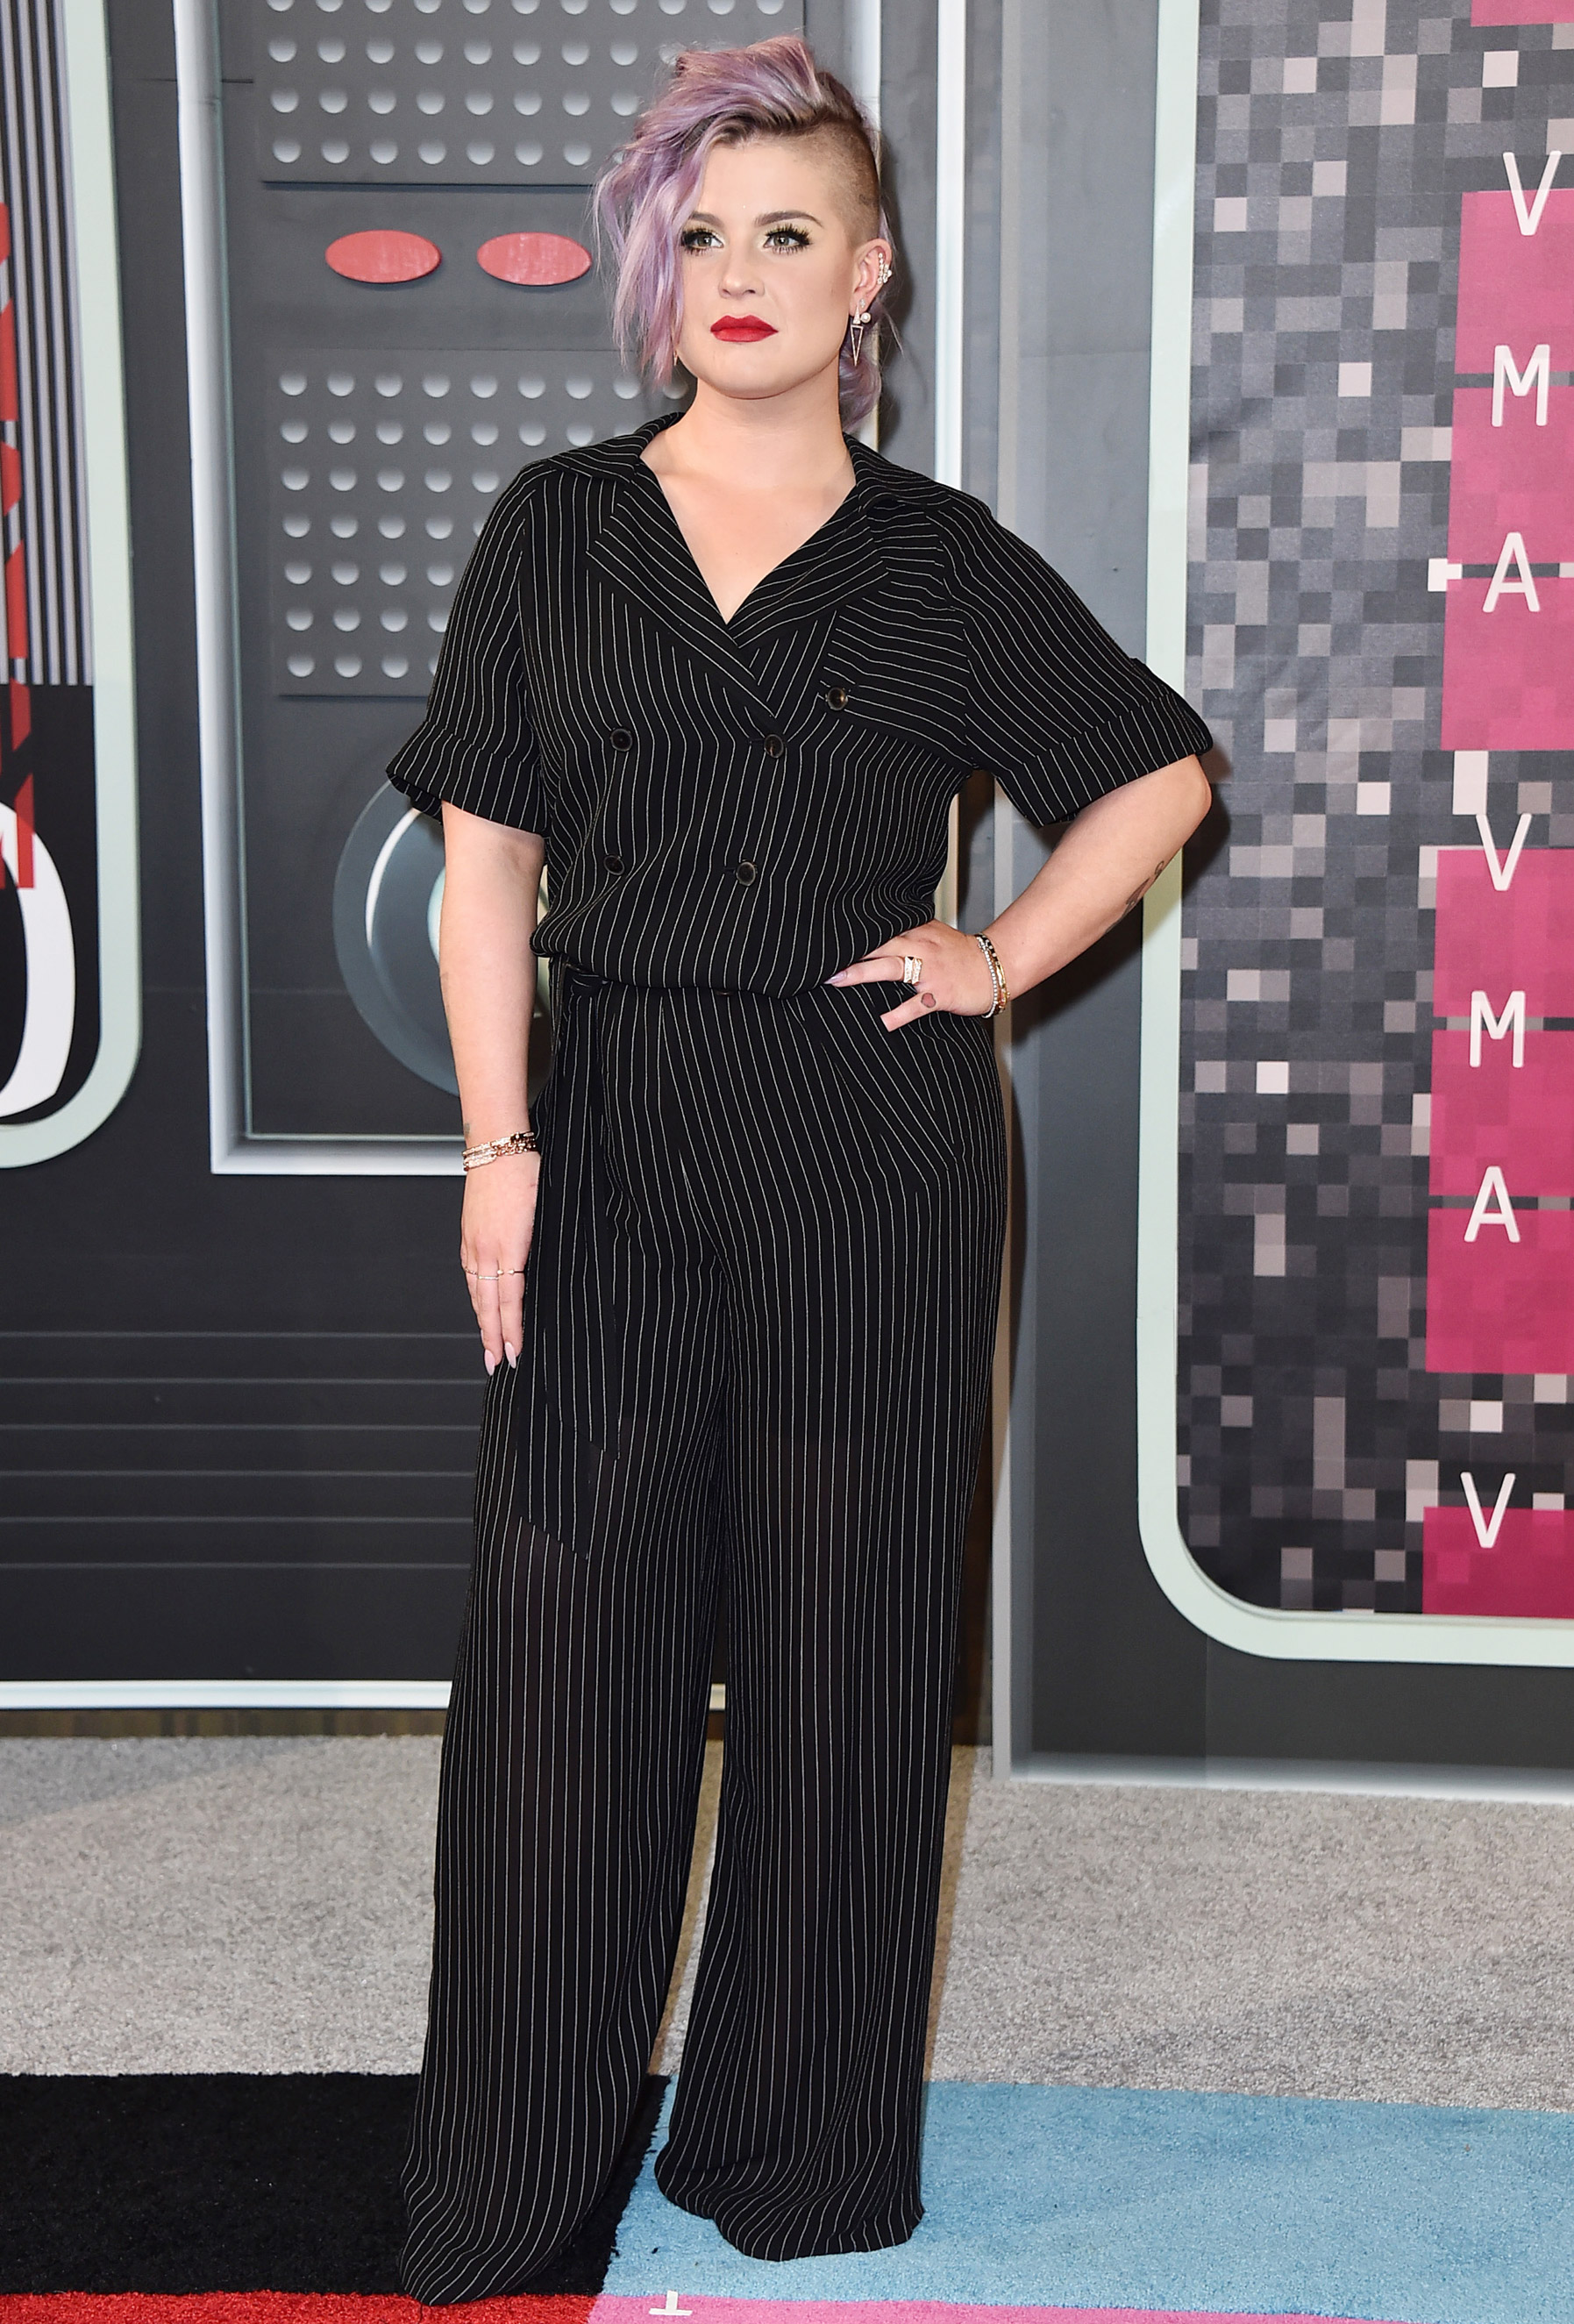 Kelly Osbourne arrives at the 2015 MTV Video Music Awards at Microsoft Theater on Aug. 30, 2015 in Los Angeles.